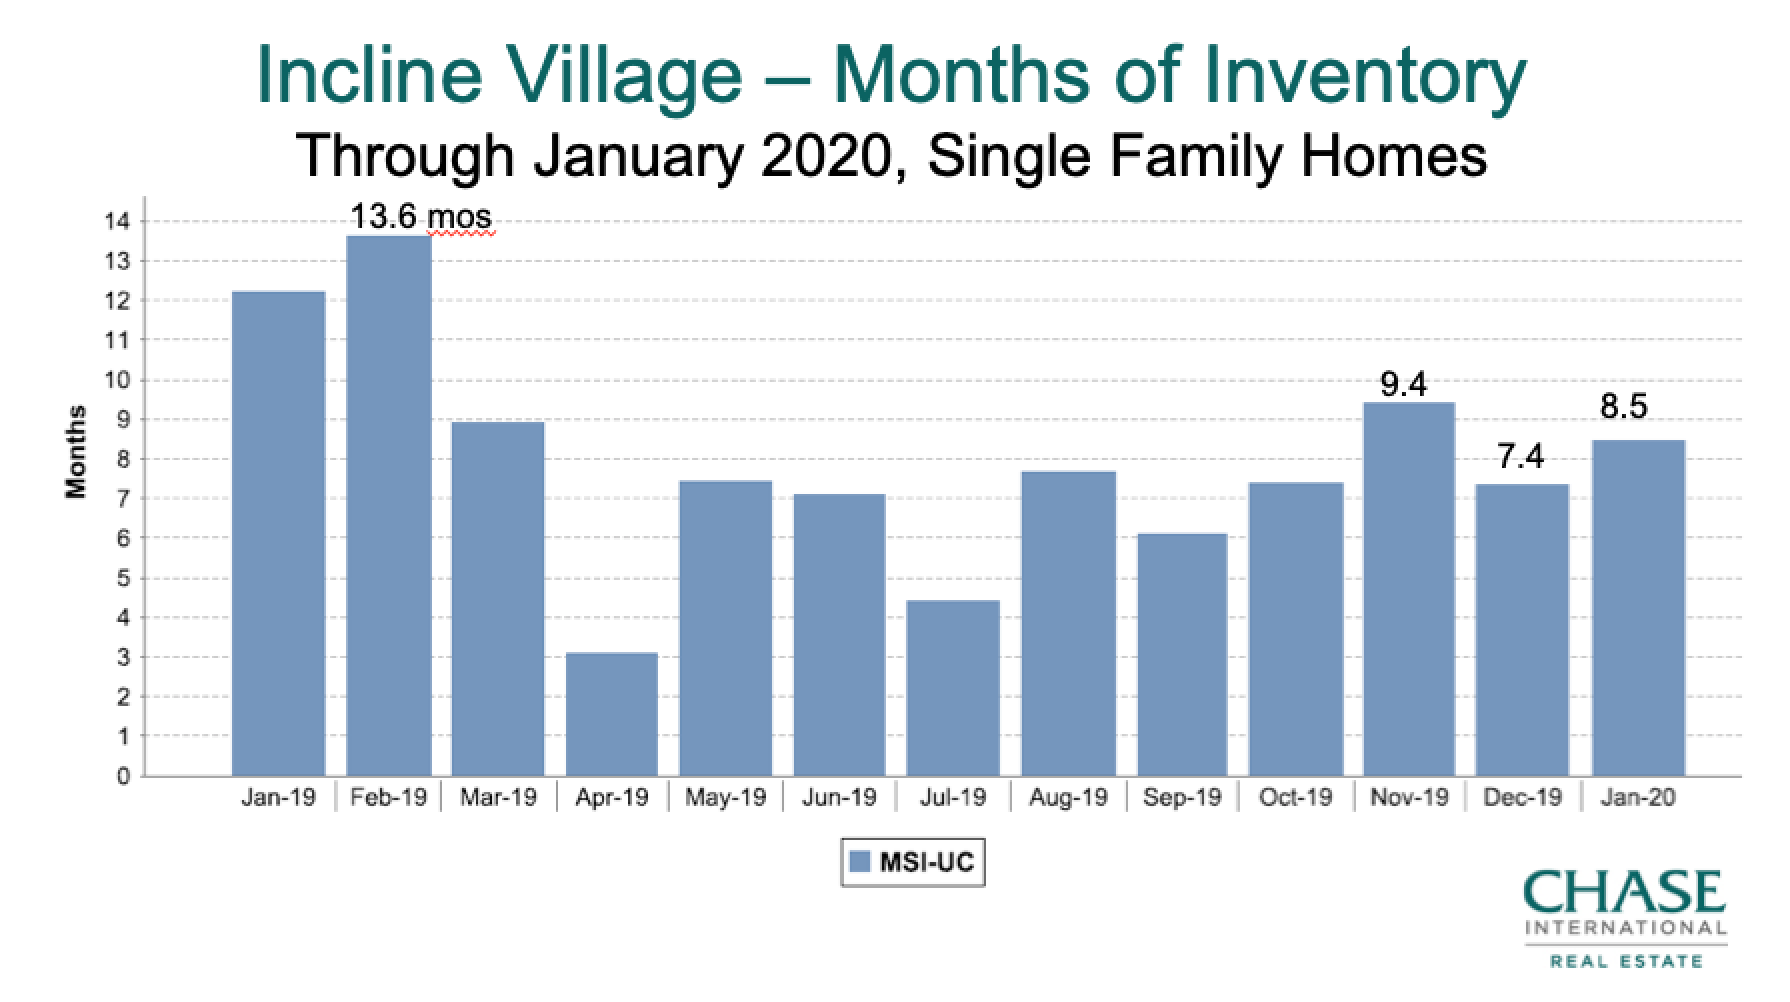 Incline Village Housing Supply 2019 - Jan 2020